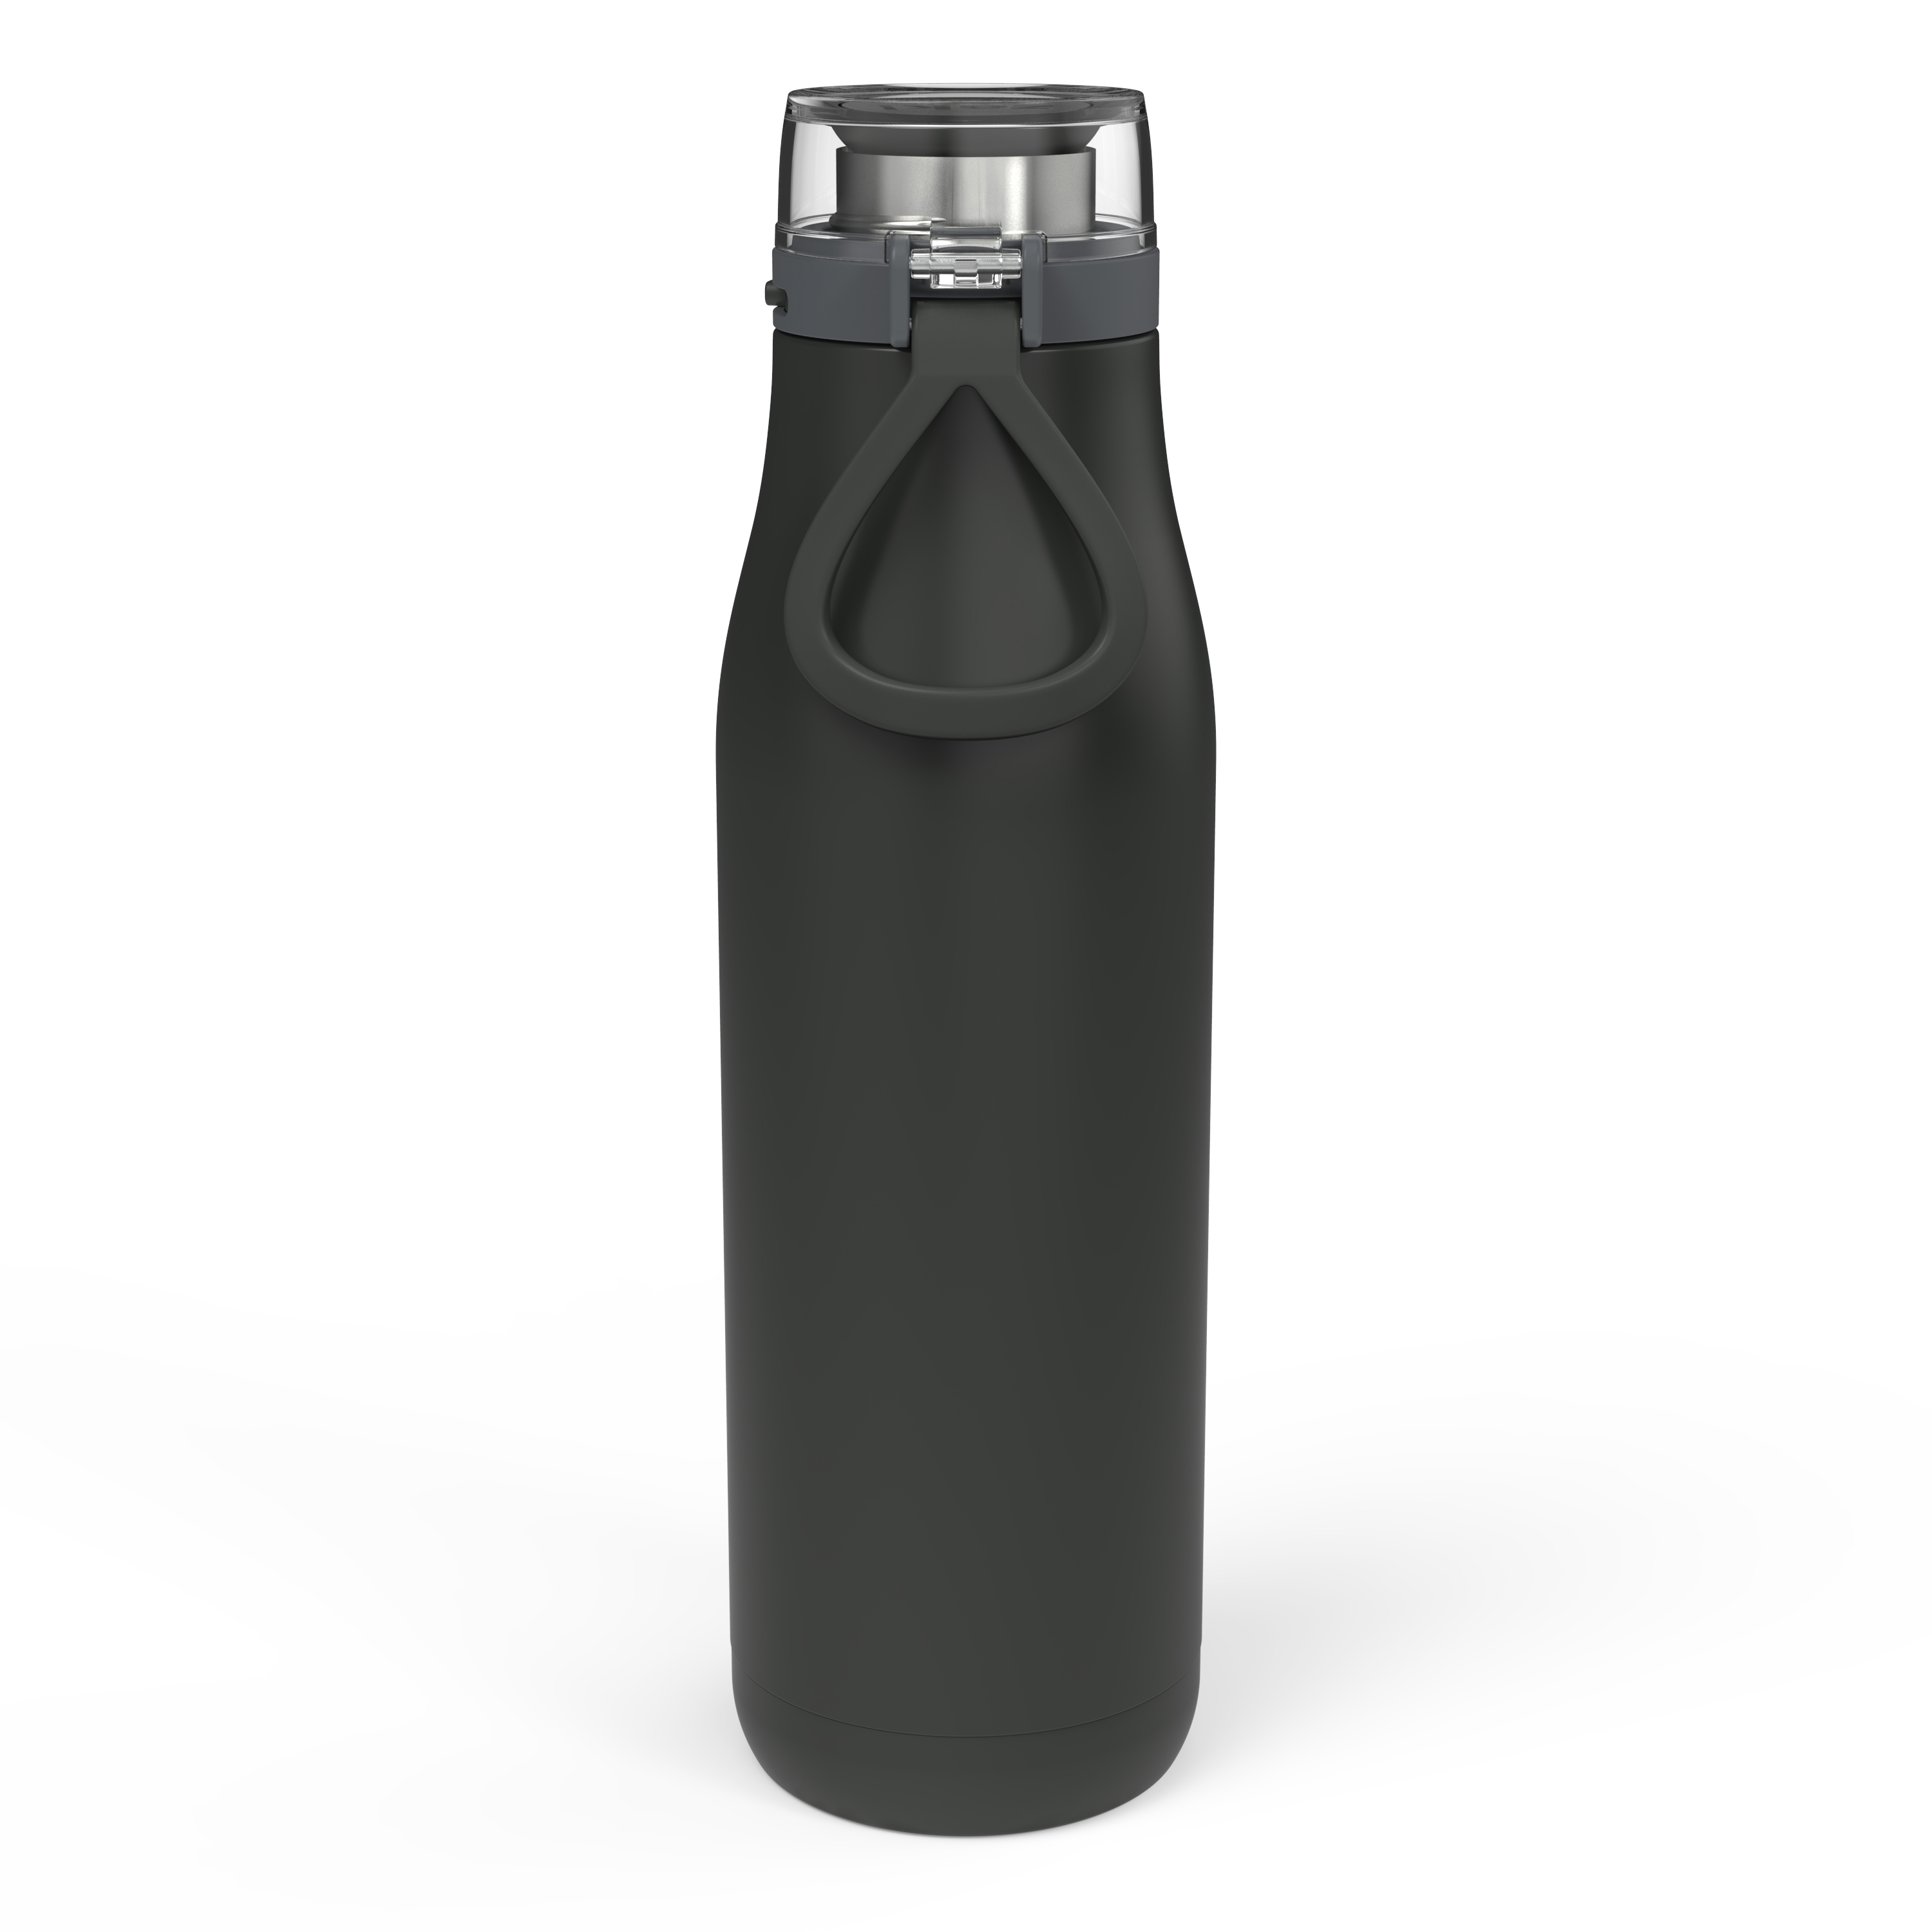 Kiona 29 ounce Vacuum Insulated Stainless Steel Tumbler, Charcoal slideshow image 4